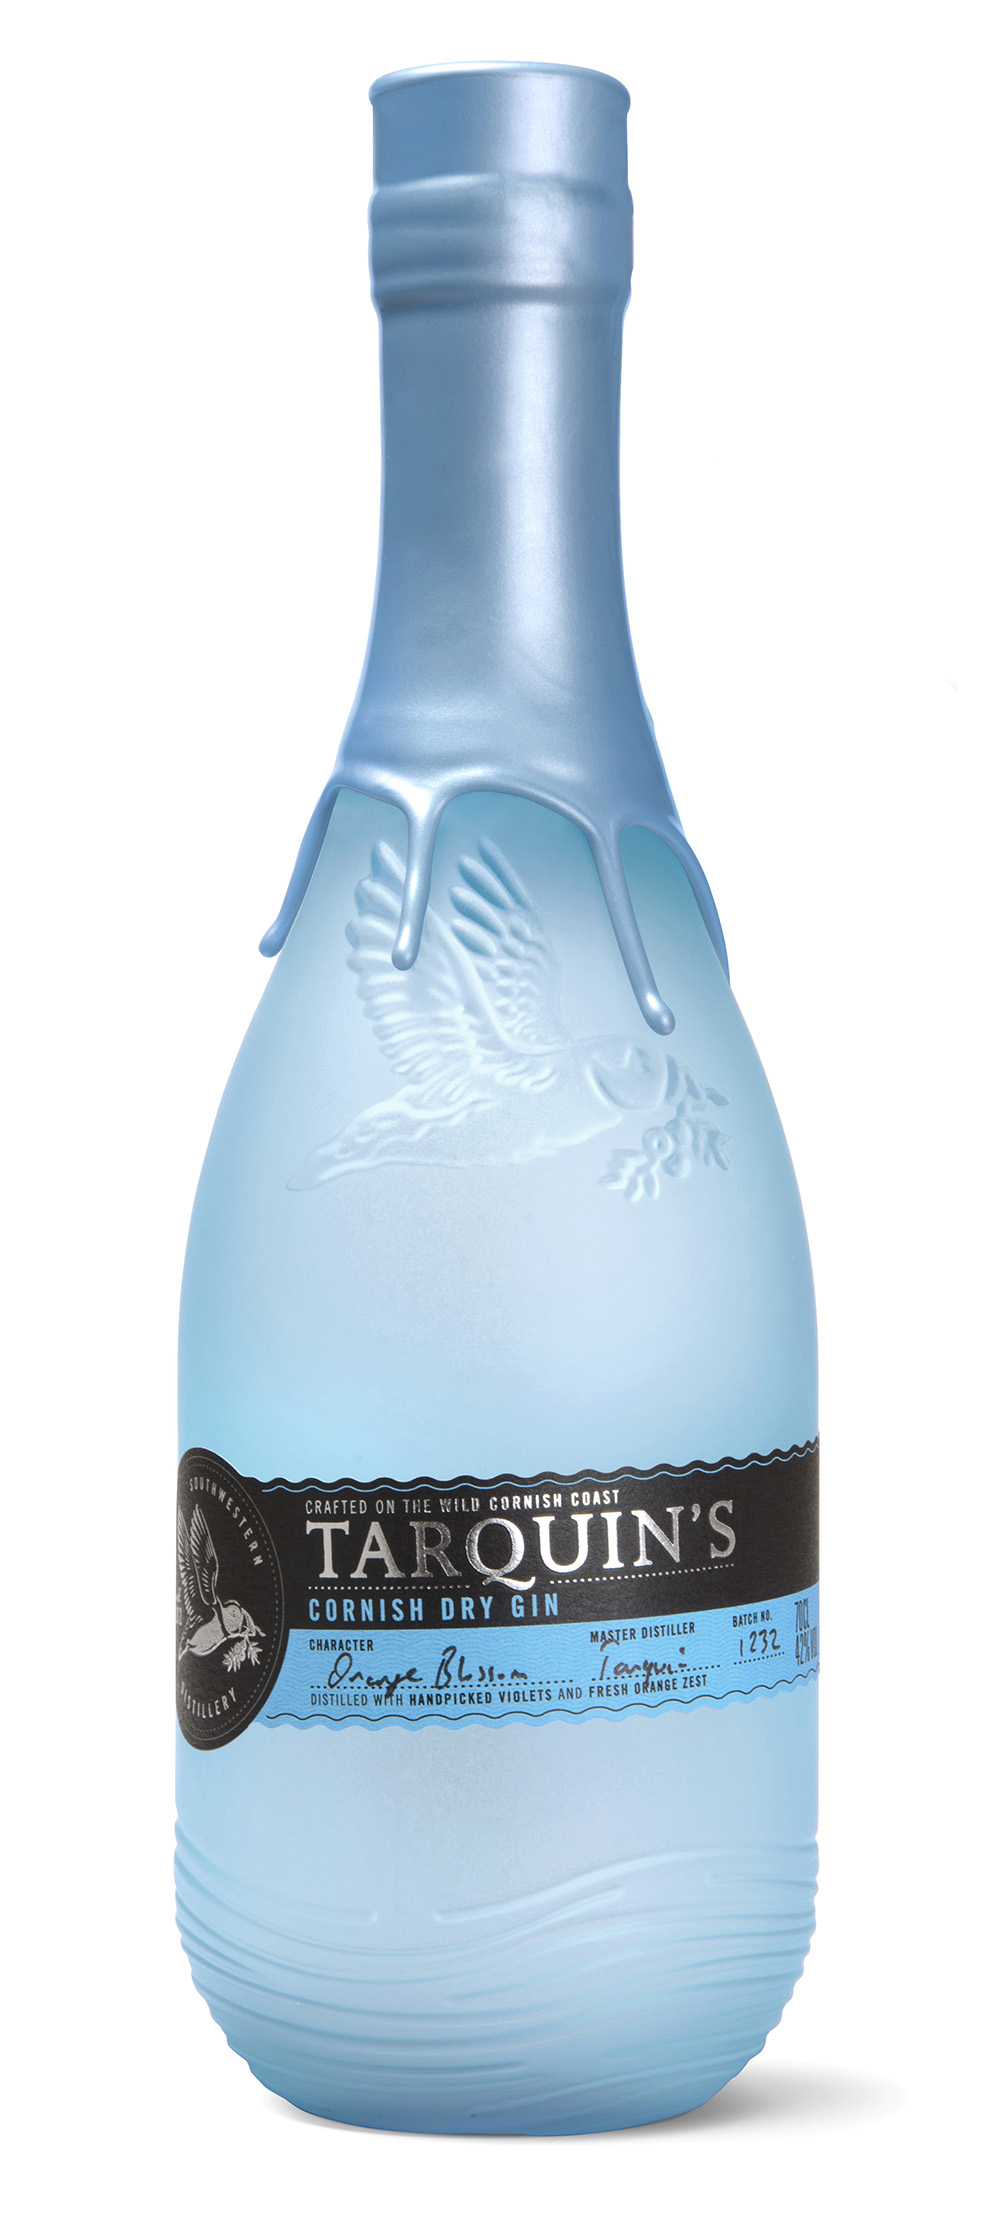 Tarquin's Cornish Gin Bottle